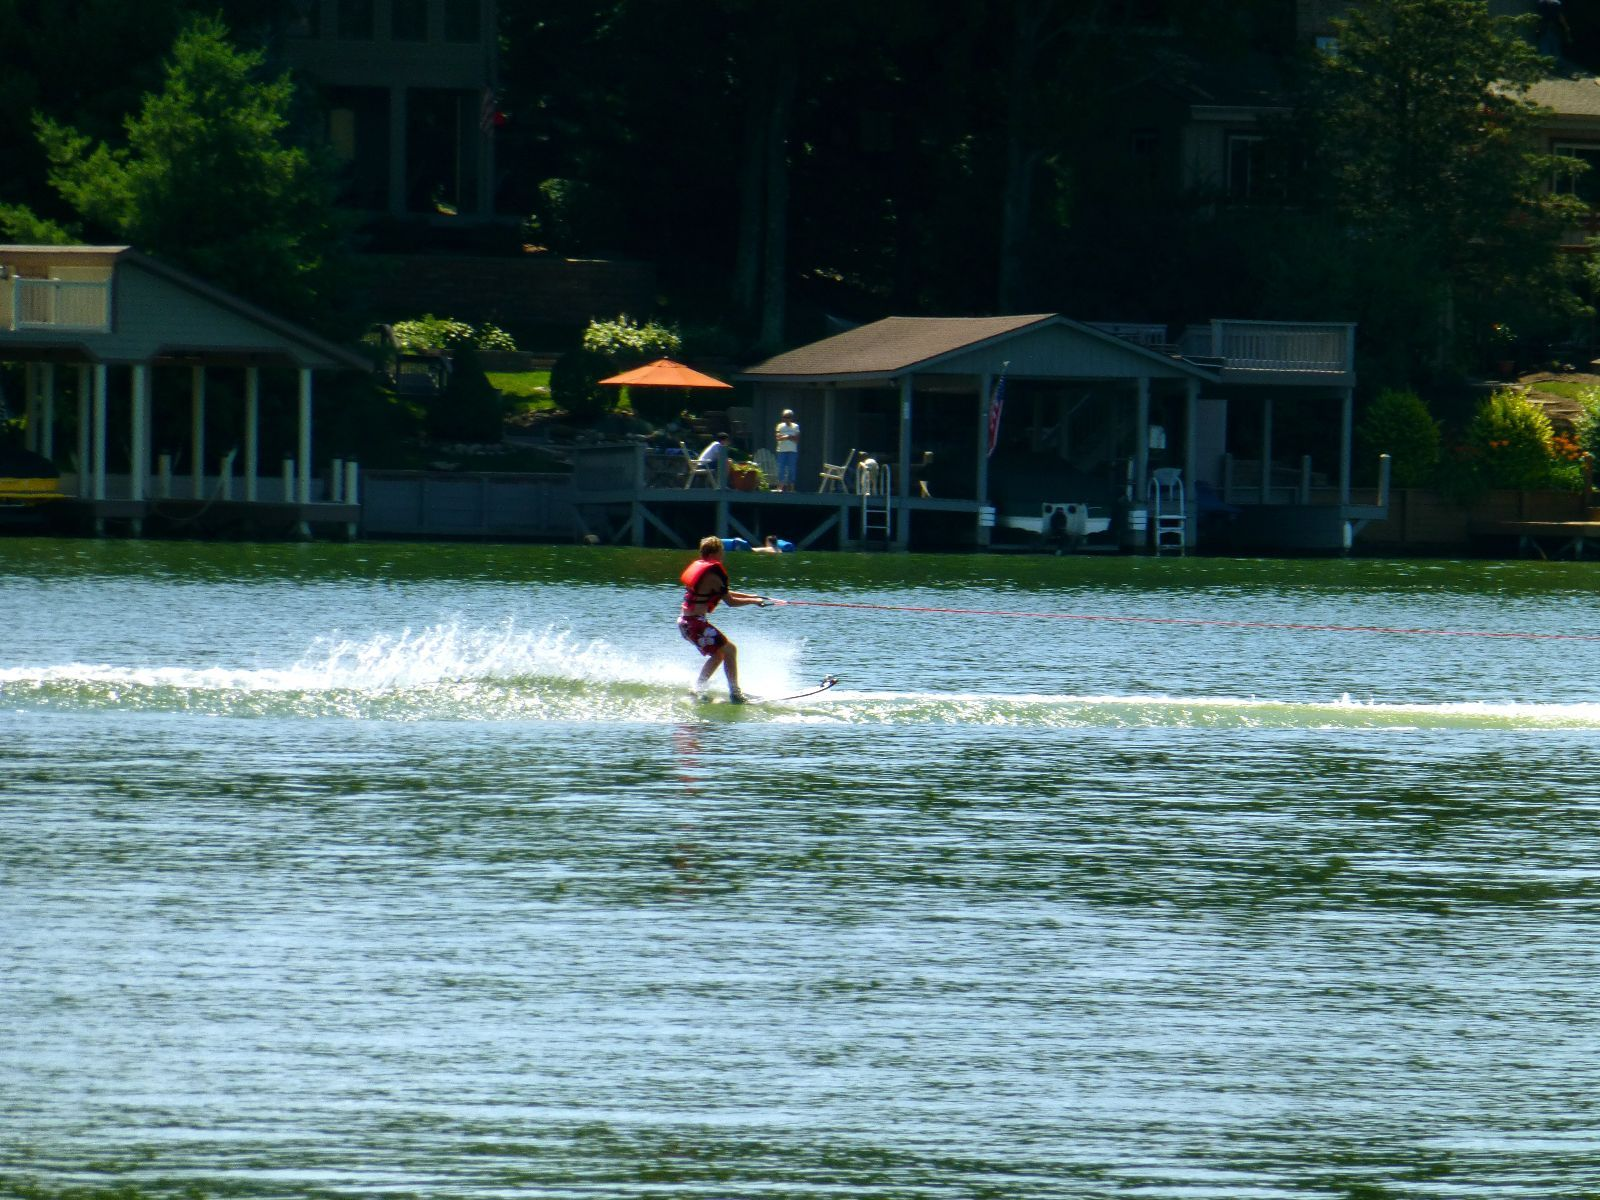 Log cabin on a lake royalty free stock photography image 7866317 - Water Skiing At The Apple Valley Lake Is A Ton Of Fun Many People First